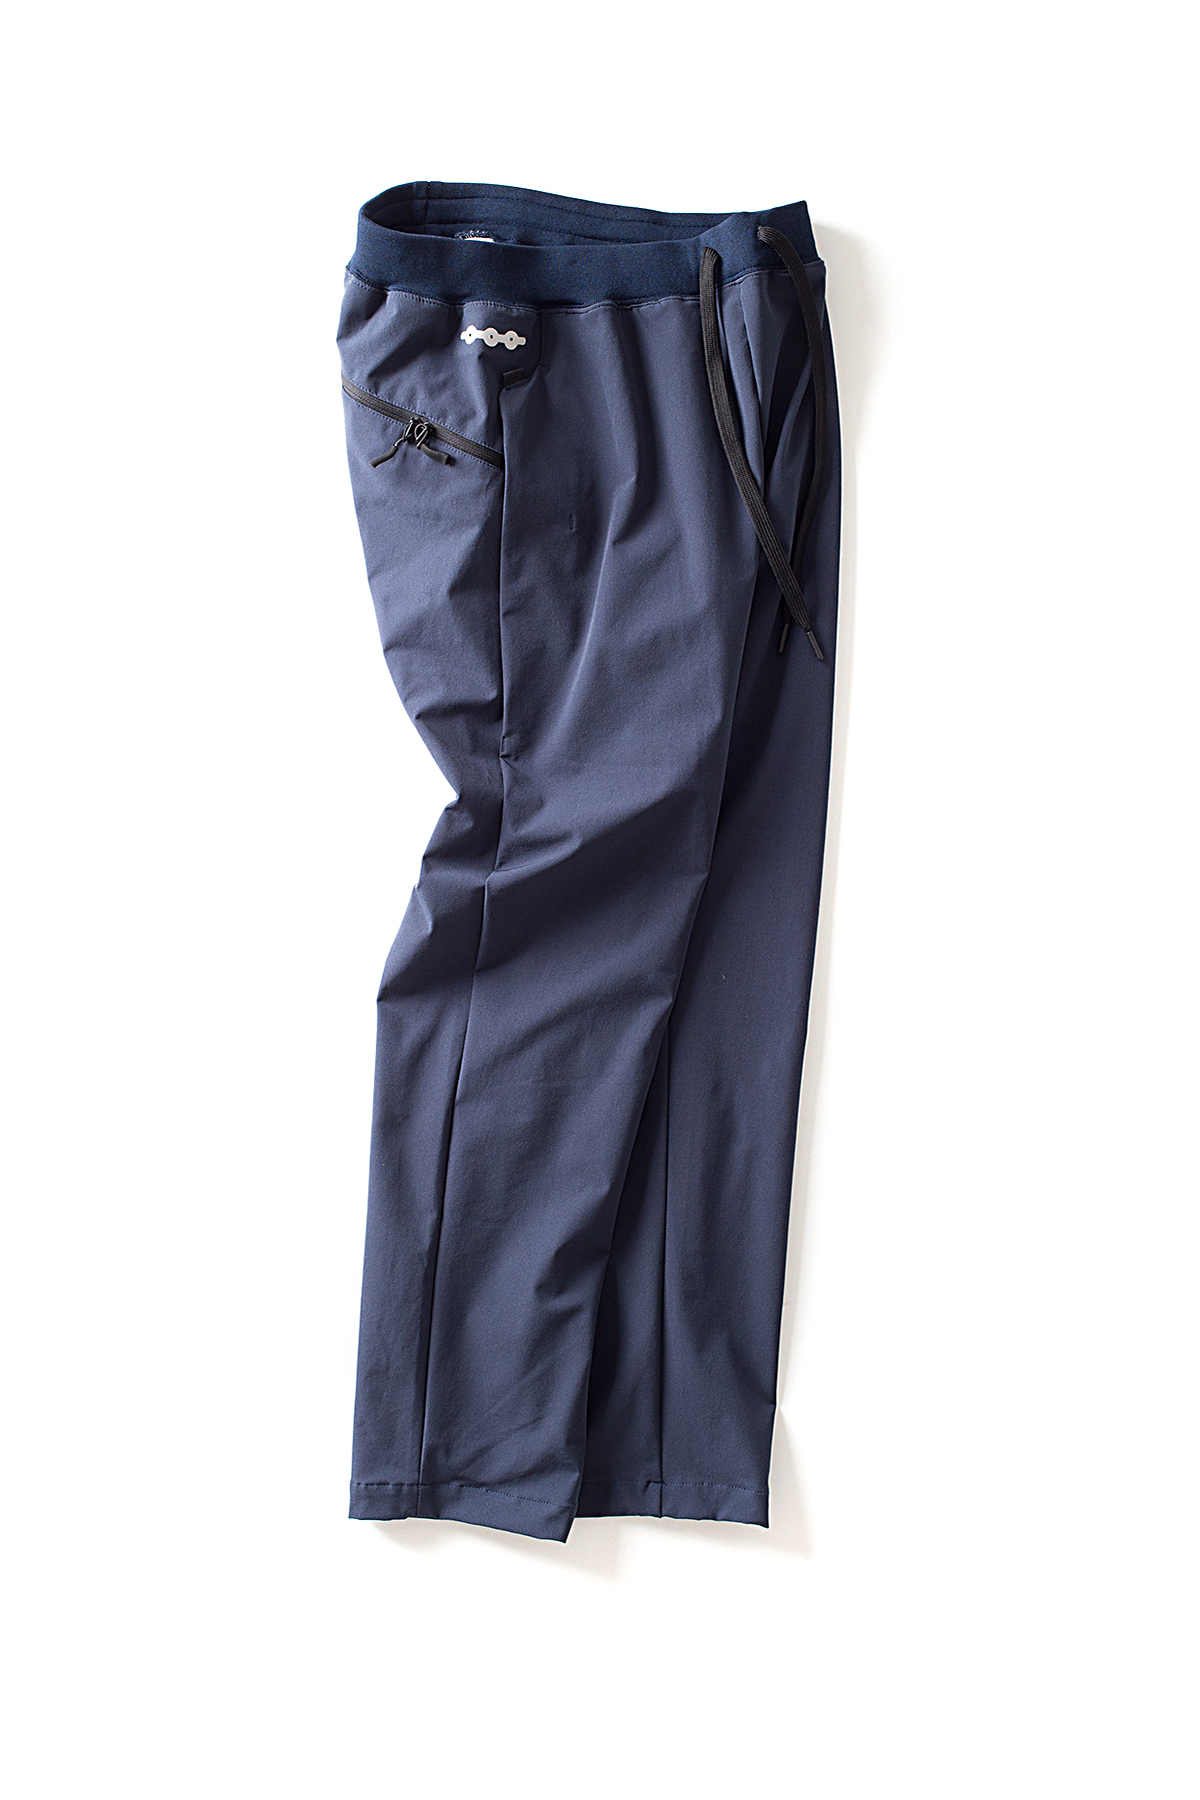 alk phenix : Crank Ankle Pants / Tech-urake (Navy)